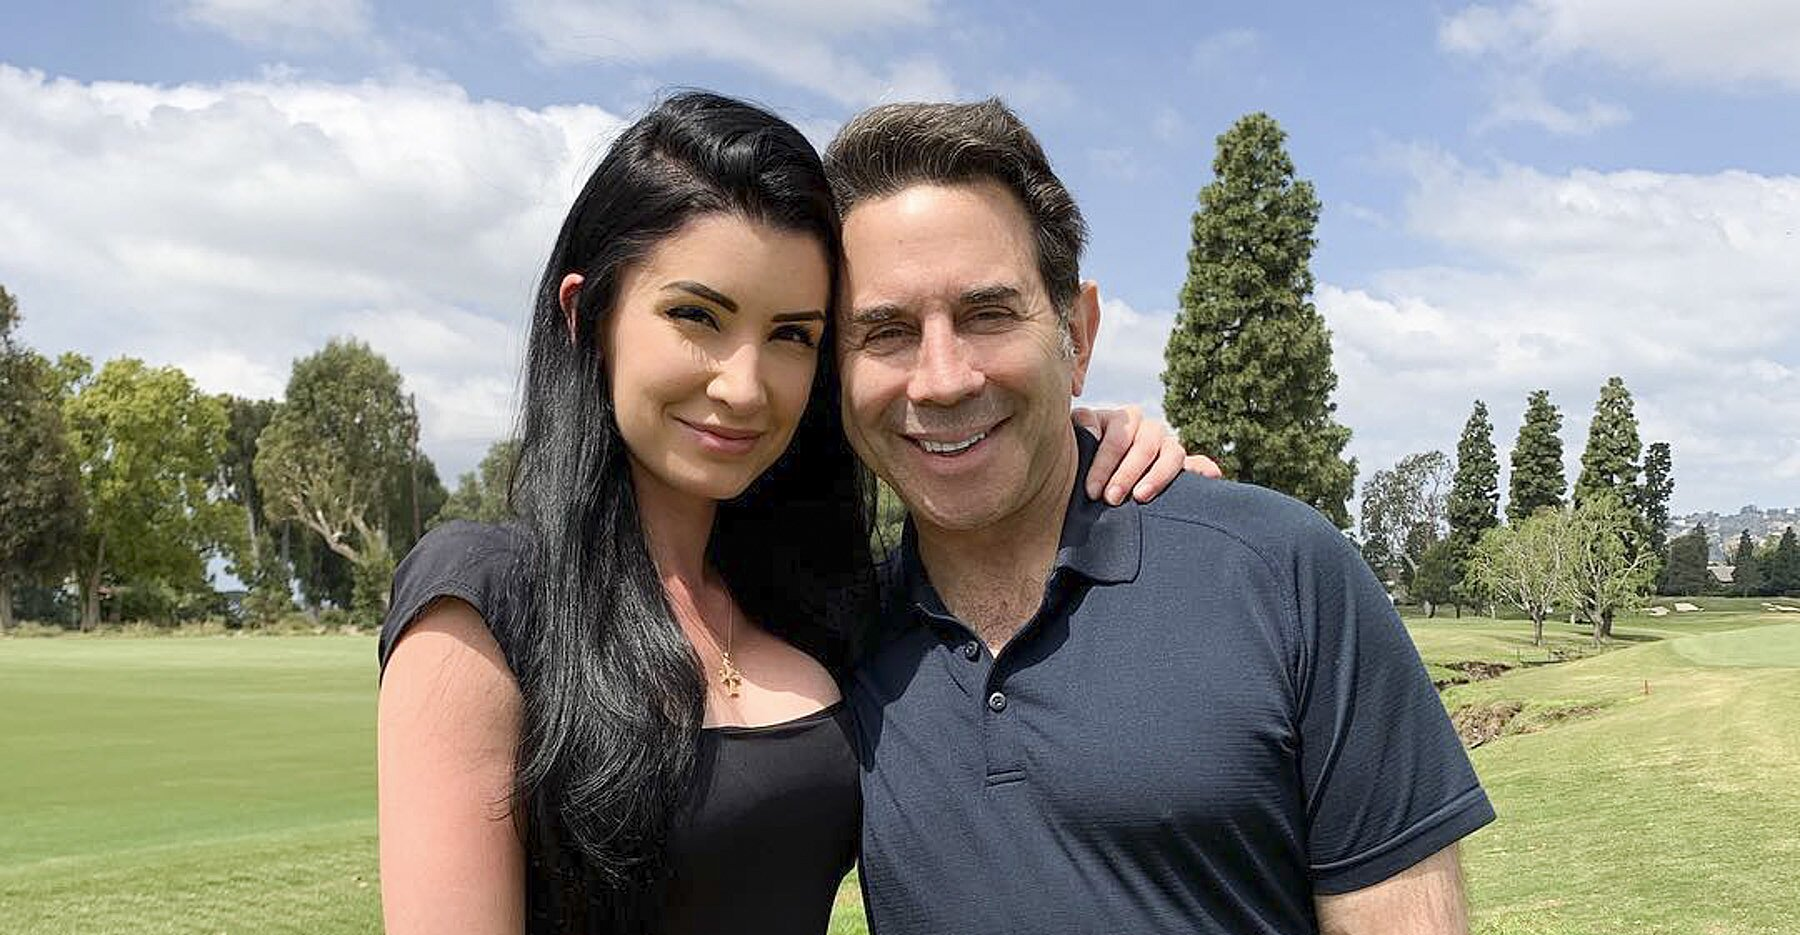 Photo of Baby on the Way for Dr. Paul Nassif and Wife: 'Better Get My Diaper-Changing Skills Polished' | PEOPLE